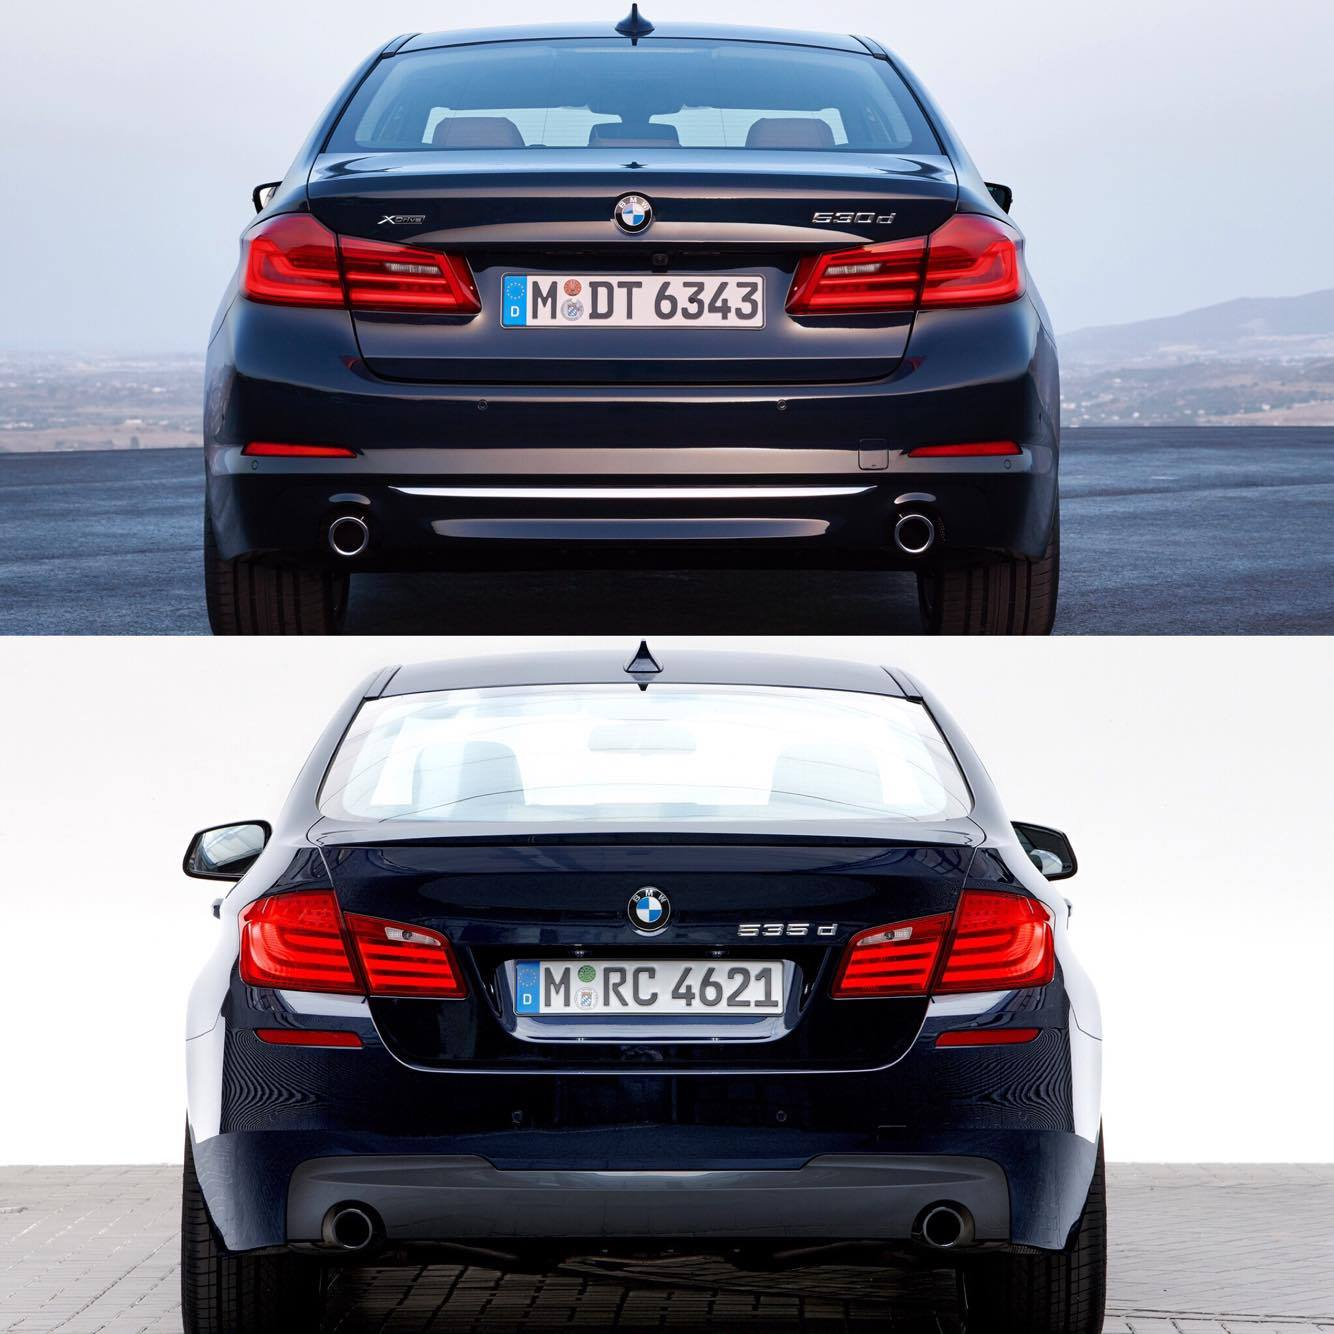 used bmw 540i for sale with G30 5 Series Vs F10 5 Series Photo  Parison on G30 5 Series Vs F10 5 Series Photo  parison further Showthread furthermore Bmw M Sport furthermore 182001756379 furthermore Car68457.